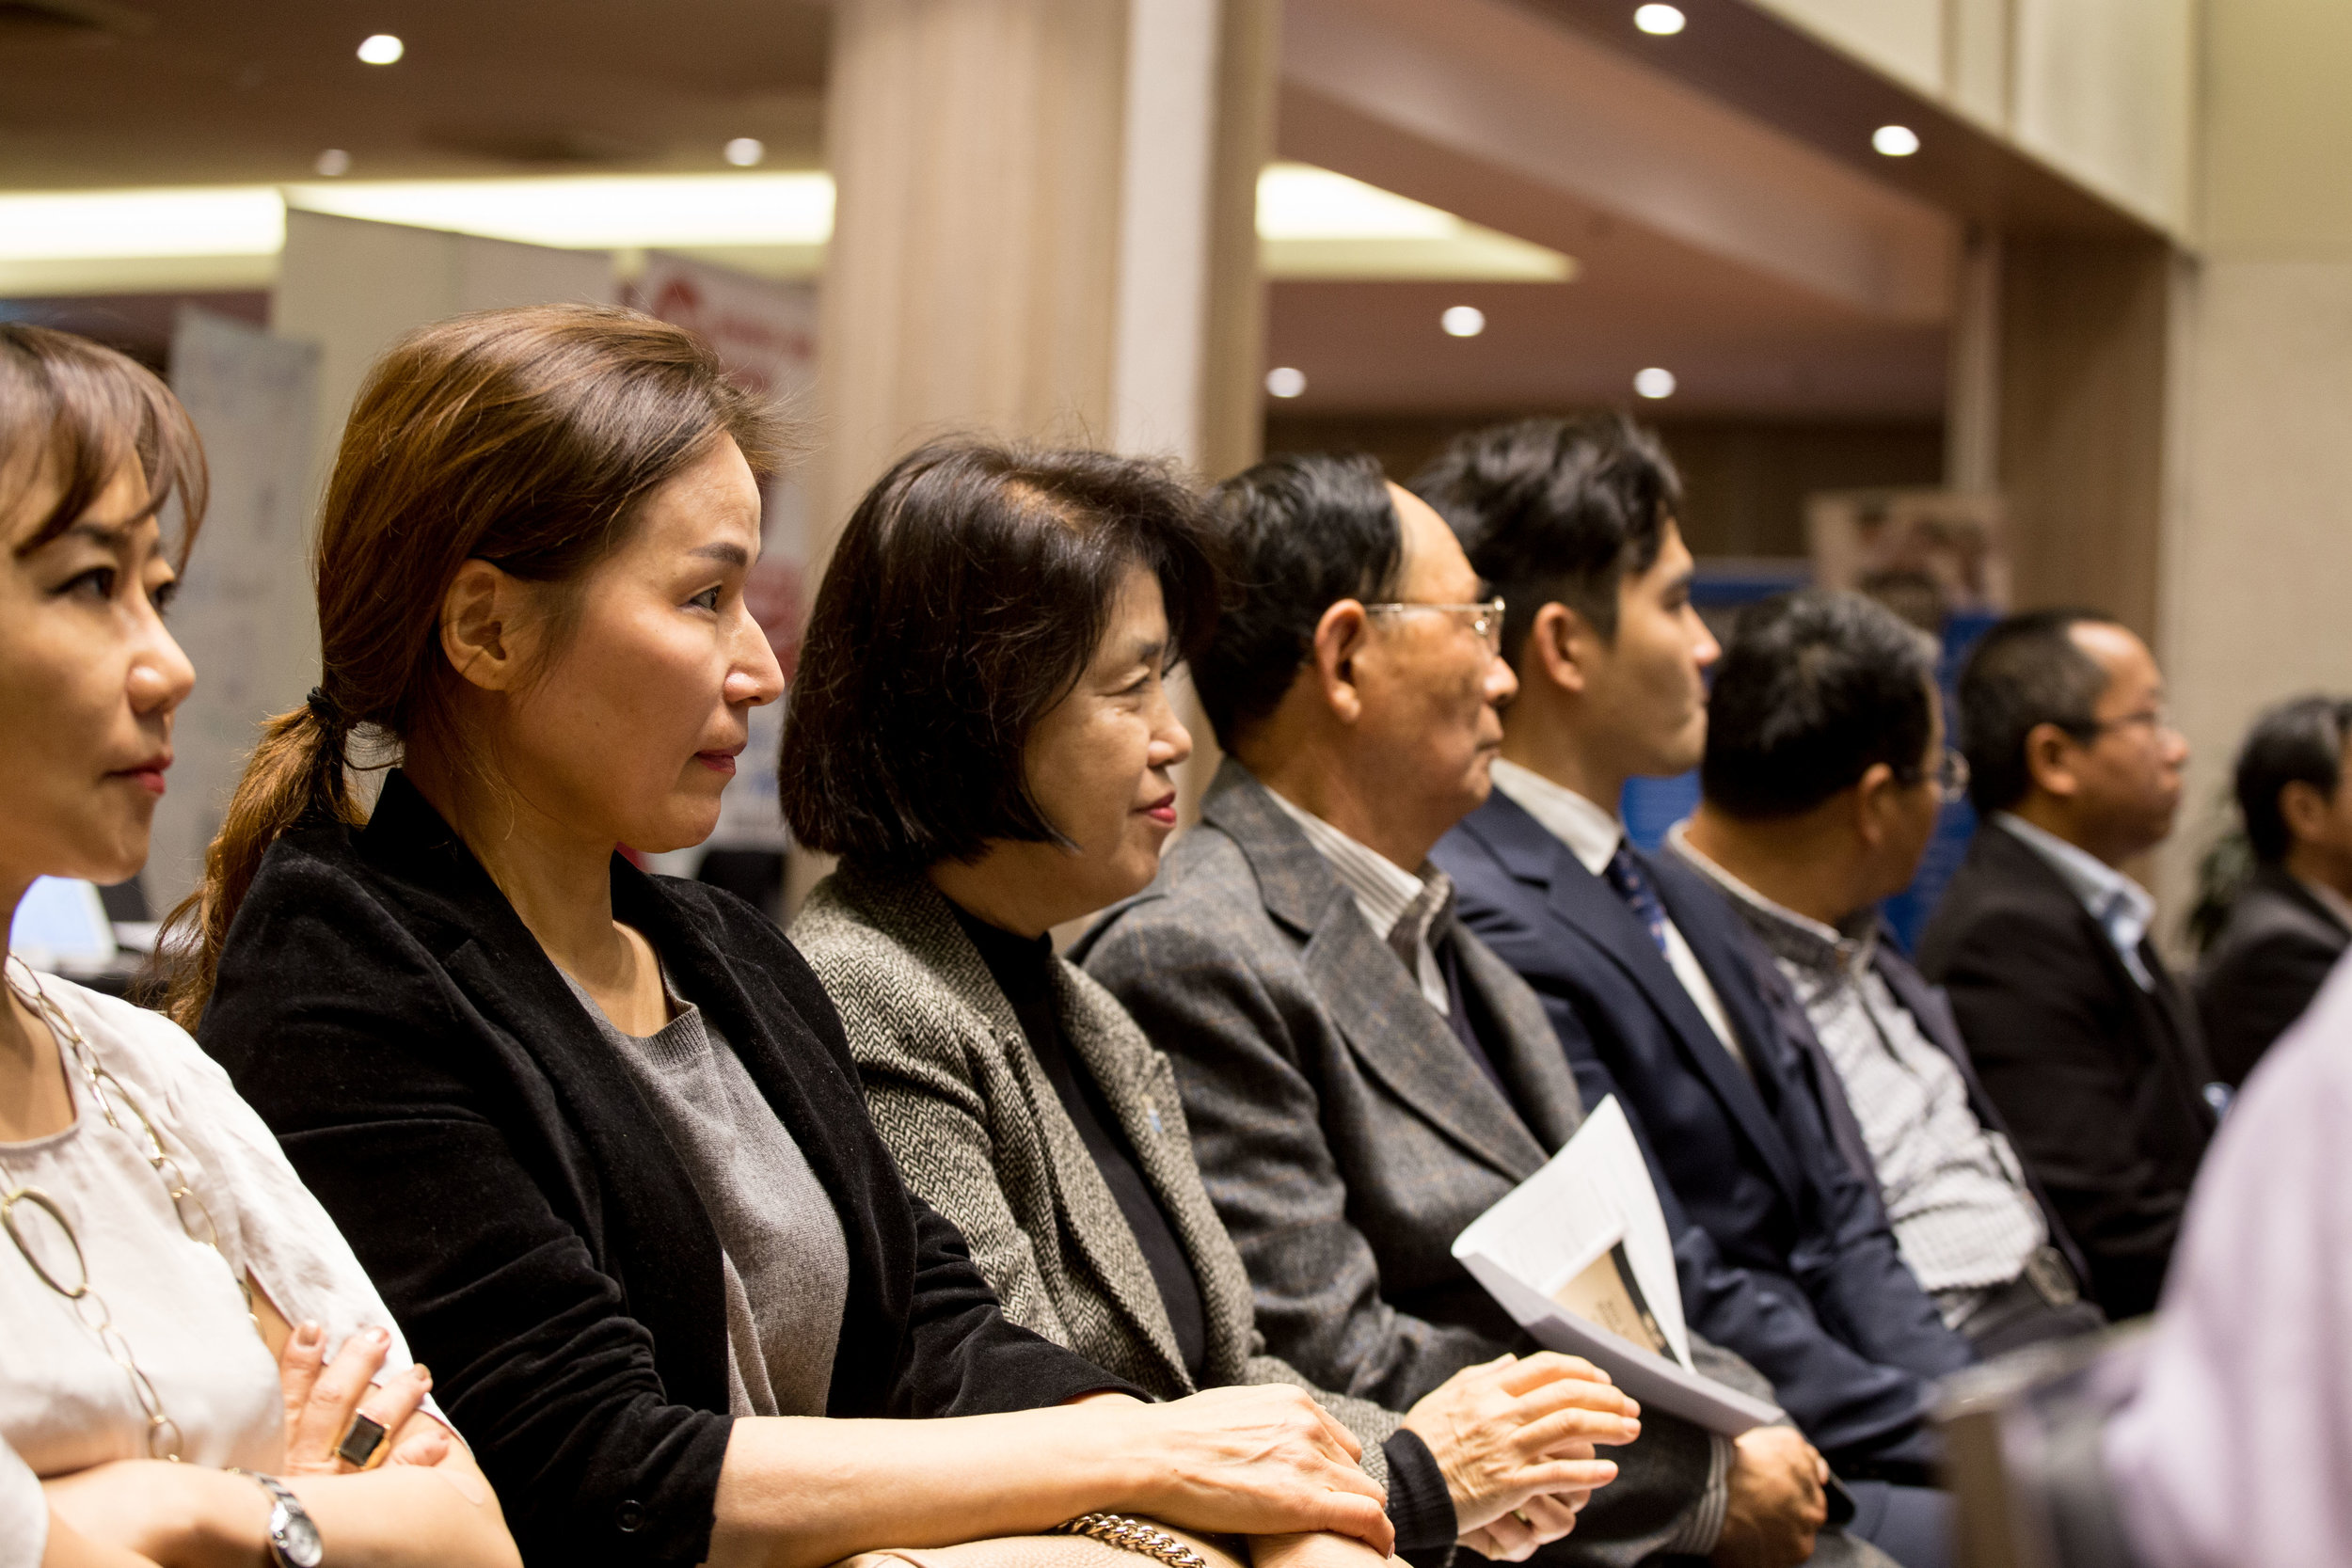 Small business owners listen tips given by industry experts